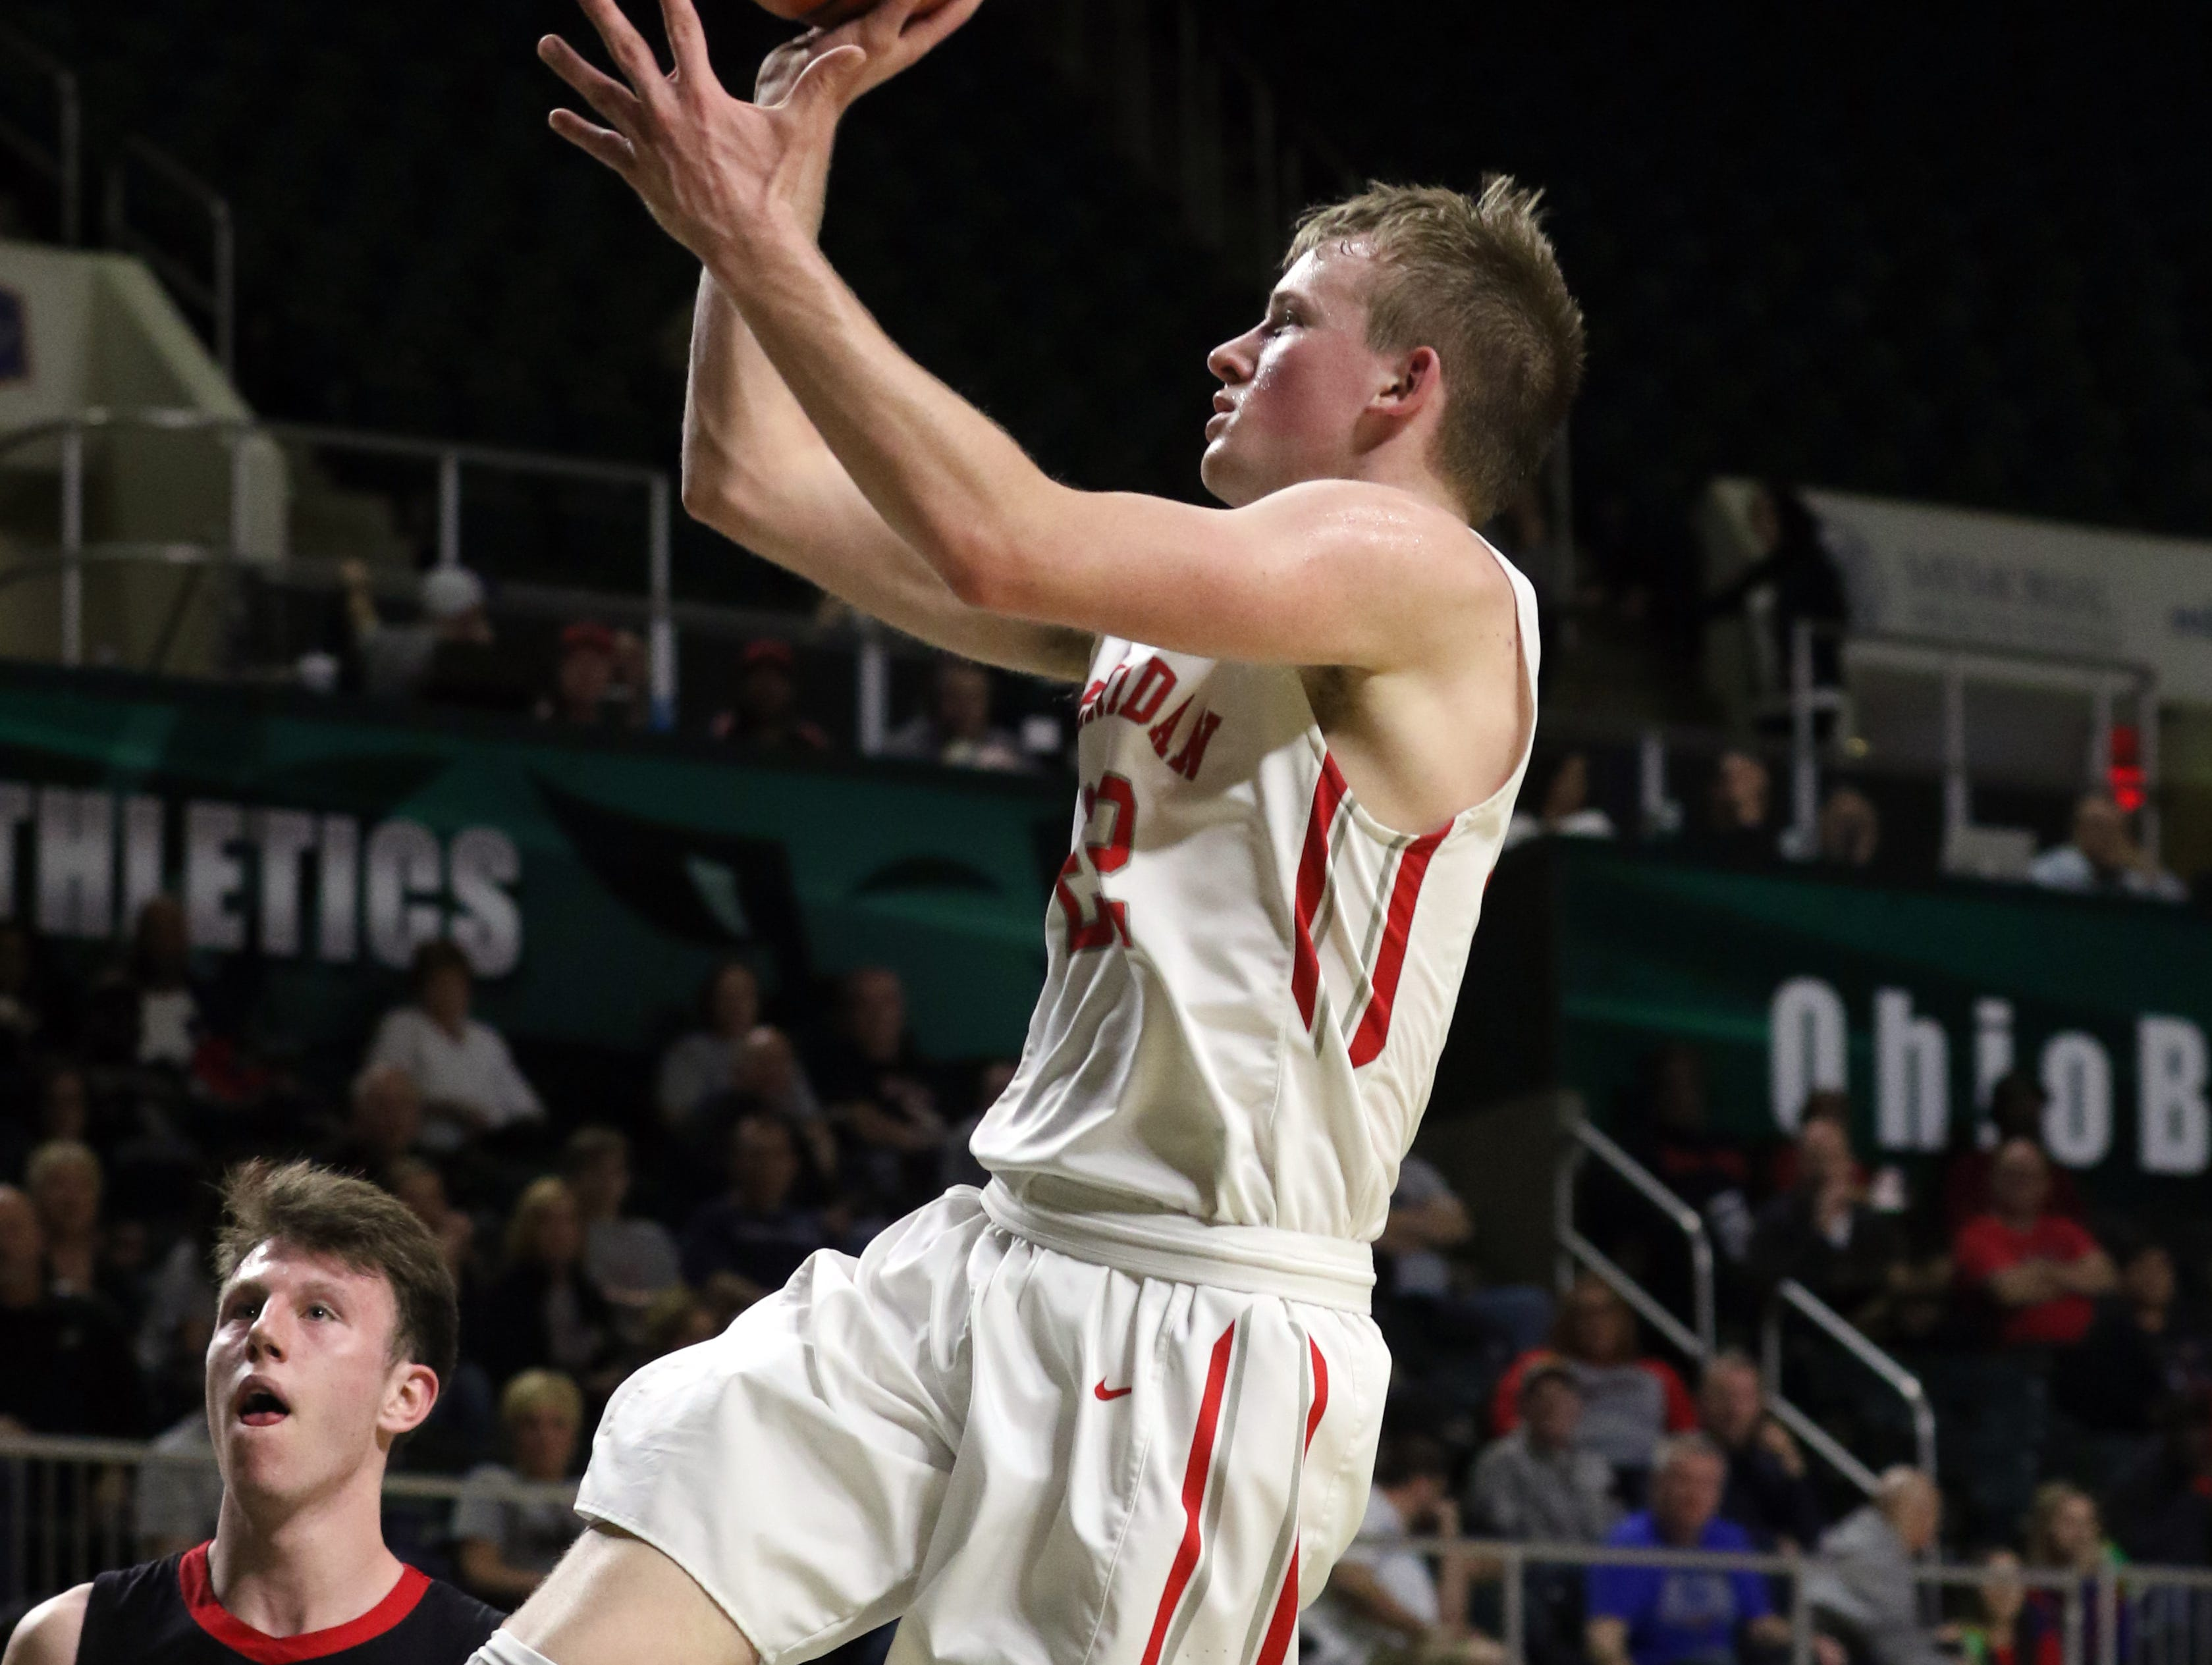 Sheridan's Landen Russell puts up a shot against Steubenville in the Division II regional semifinals Wednesday in Athens.